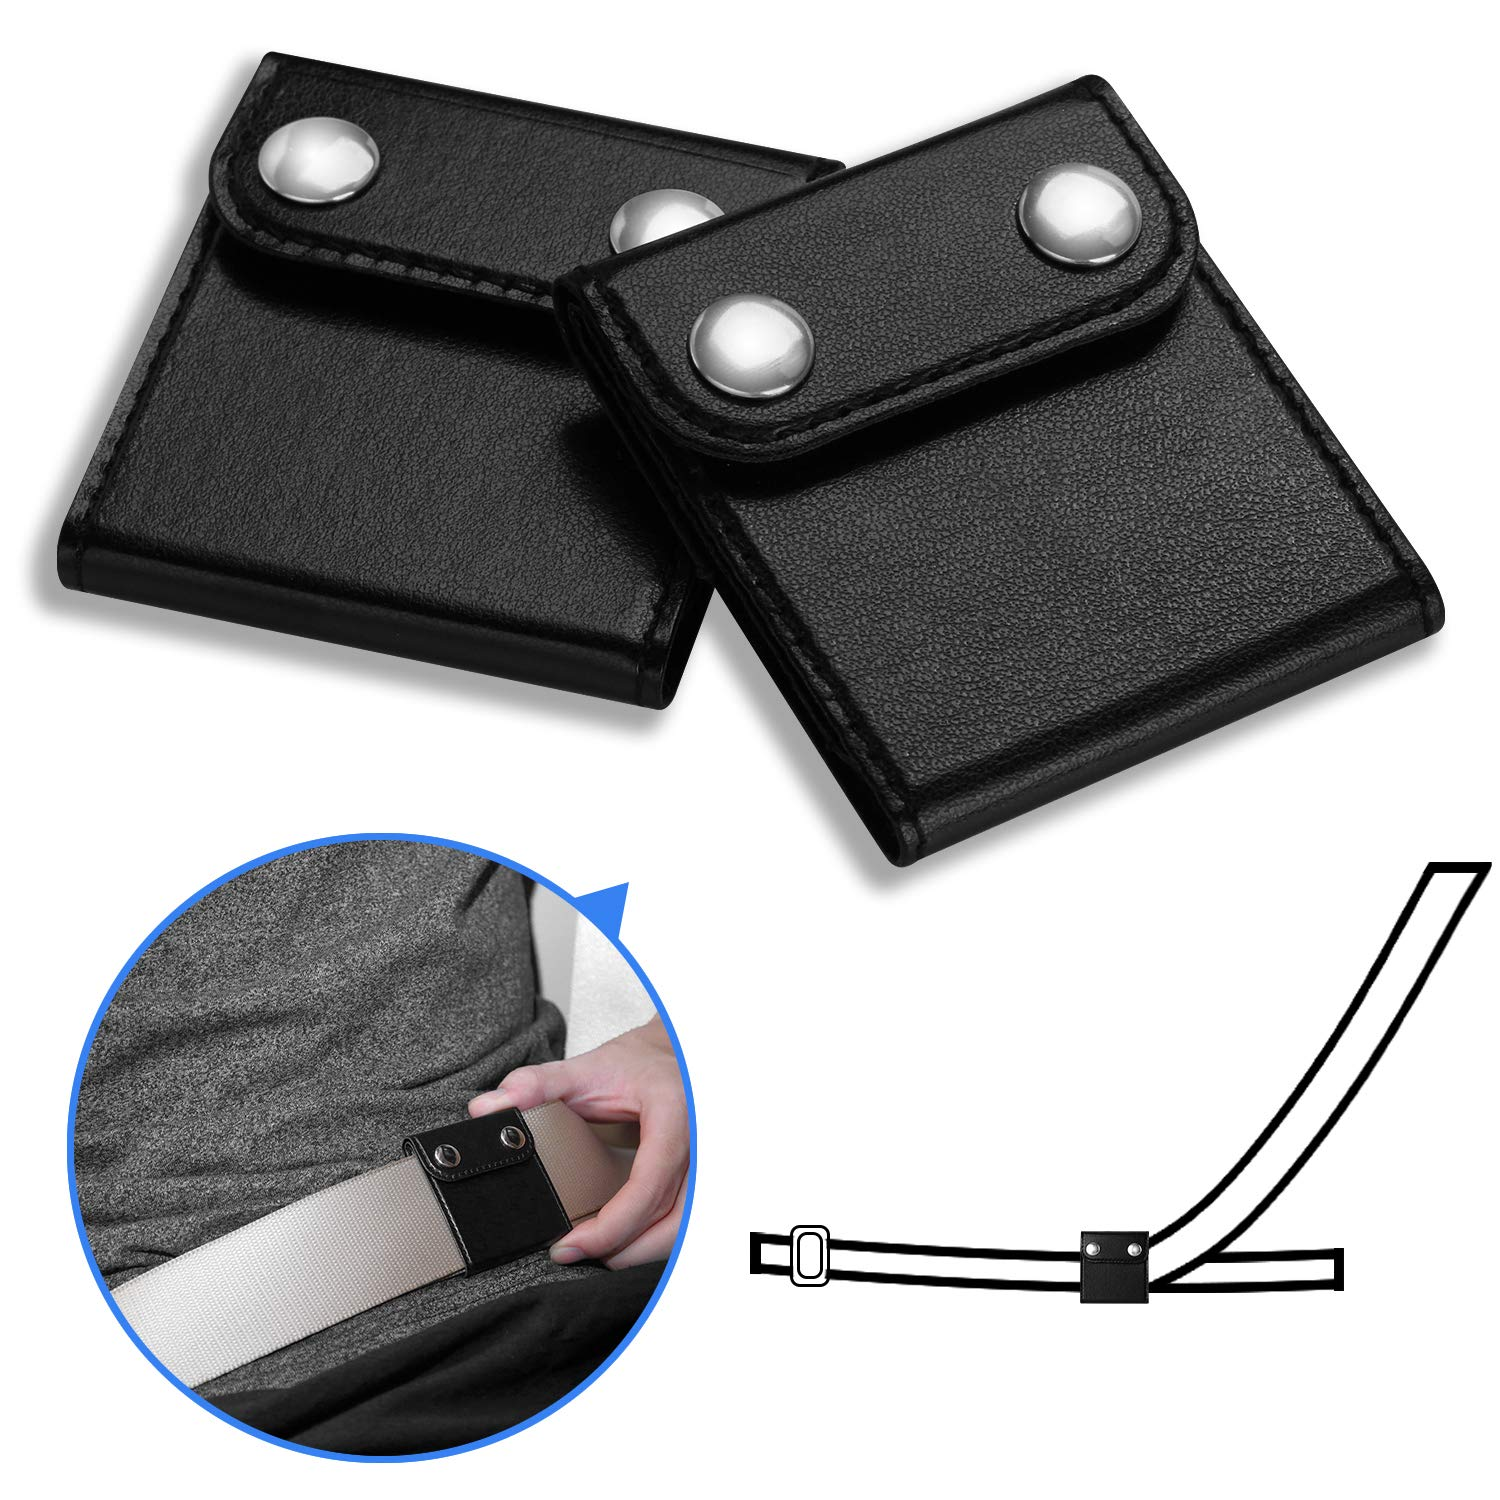 JCBABA Seatbelt Adjuster for Adults and Kids, Pack of 2 car Seatbelt Adjuster, Car Seat Belt Covers with PU Leather Auto Shoulder Neck Protector Strap Positioner Locking Clip for Short Adults